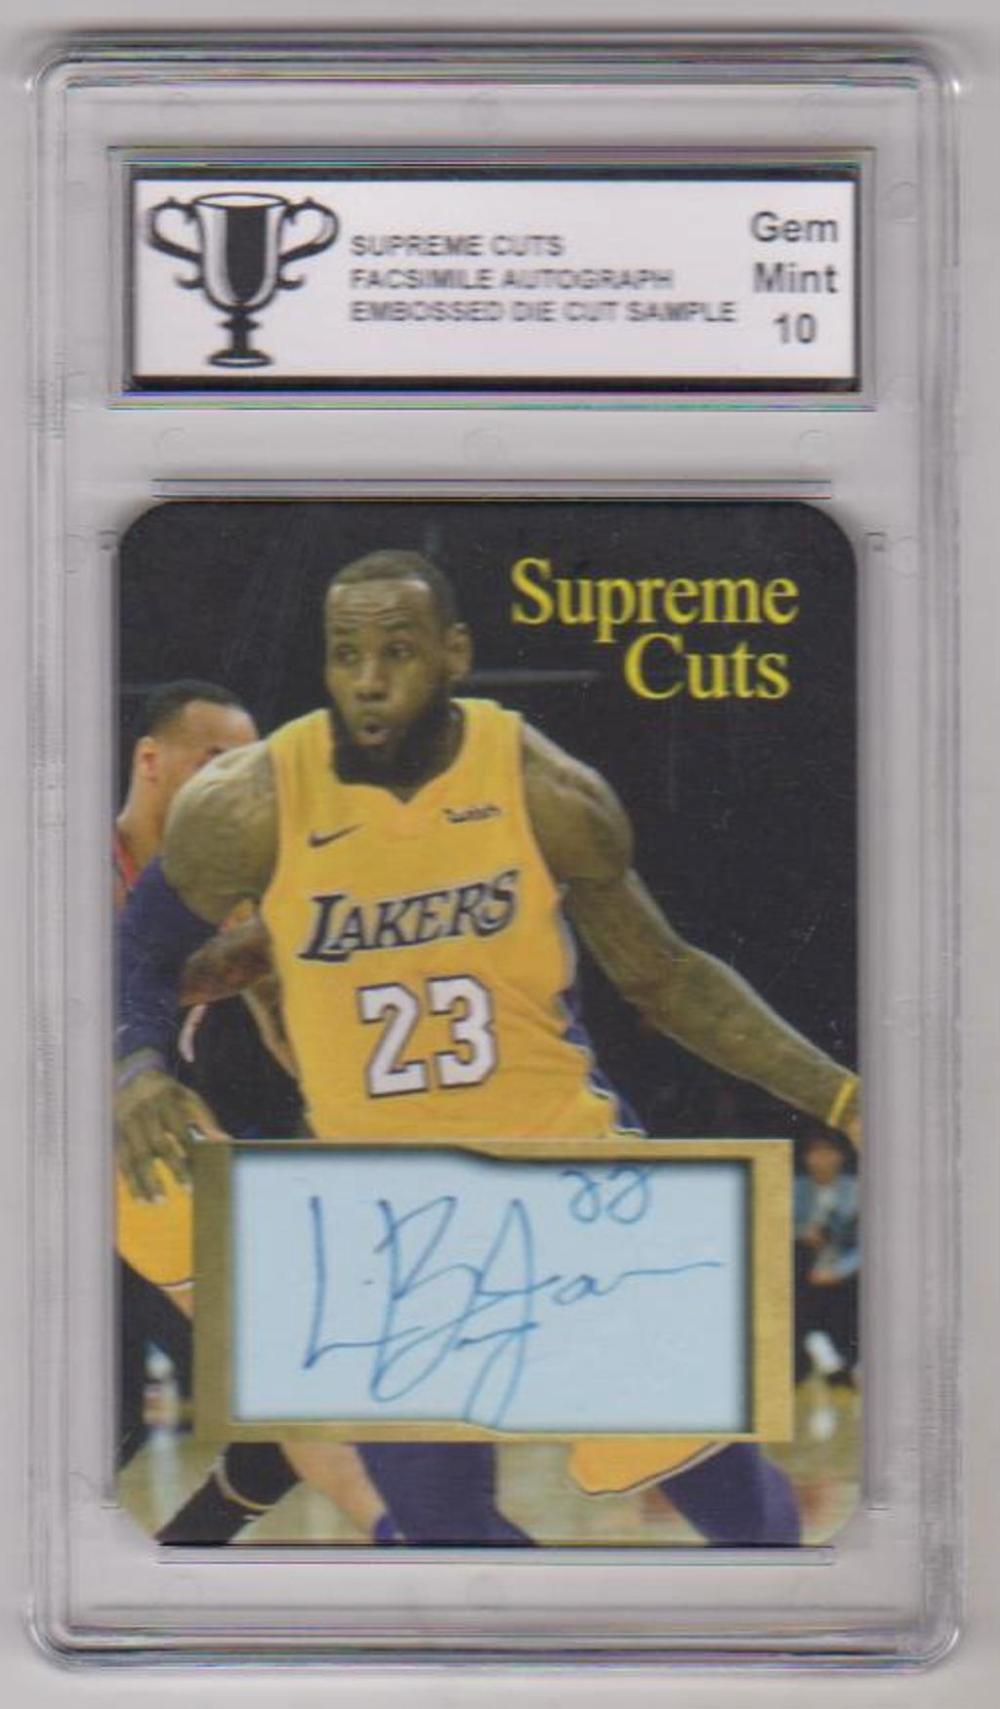 Graded Gem Mint 10 Lebron James Supreme Cuts Die Cut Embossed Facsimile Autograph Sample Card